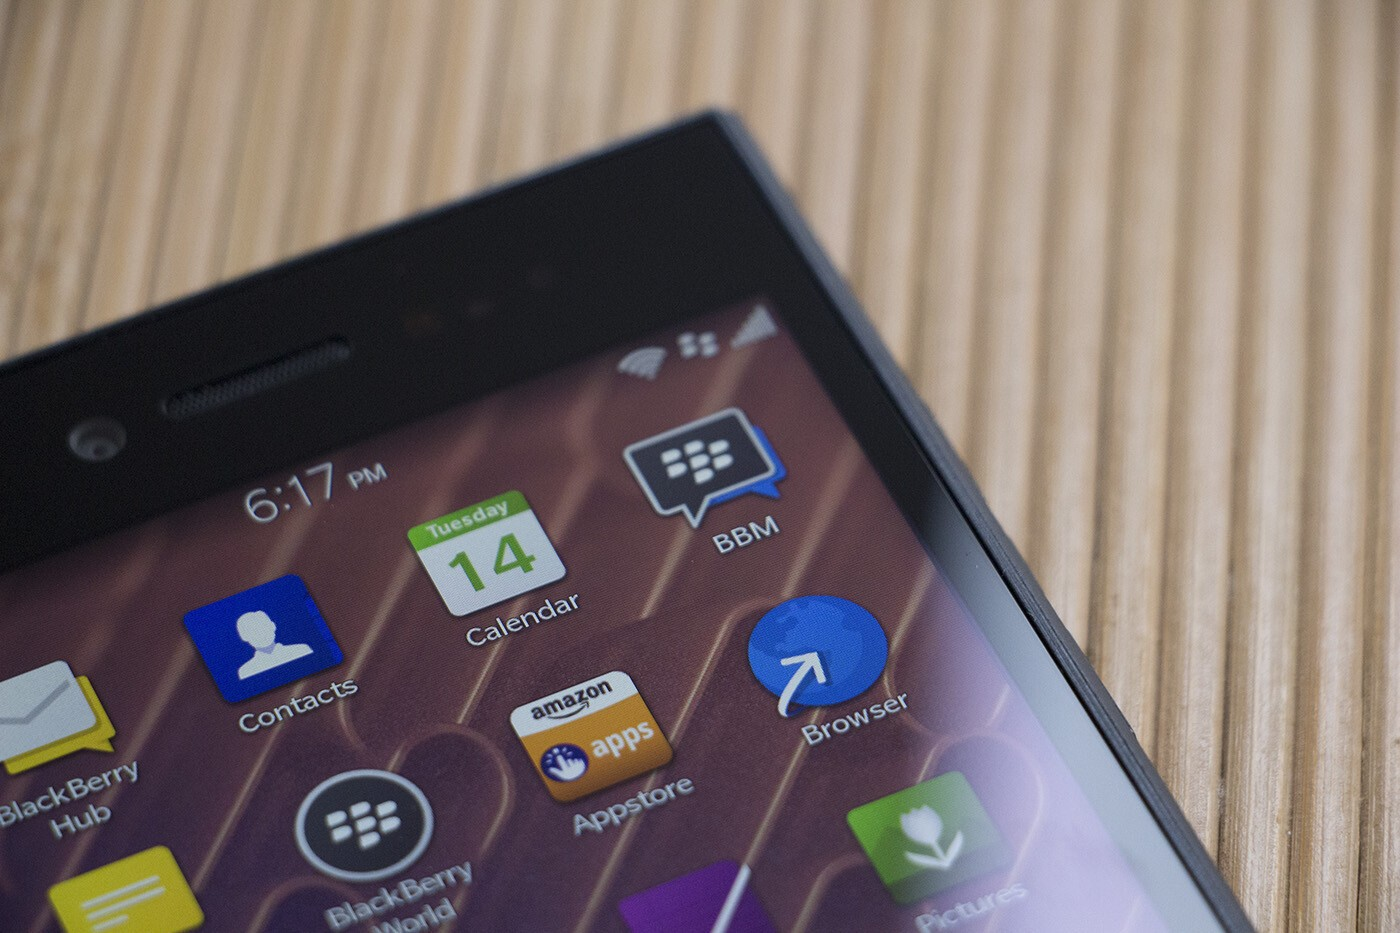 BBM for BlackBerry 10 updated, all Privacy and Control features now free!